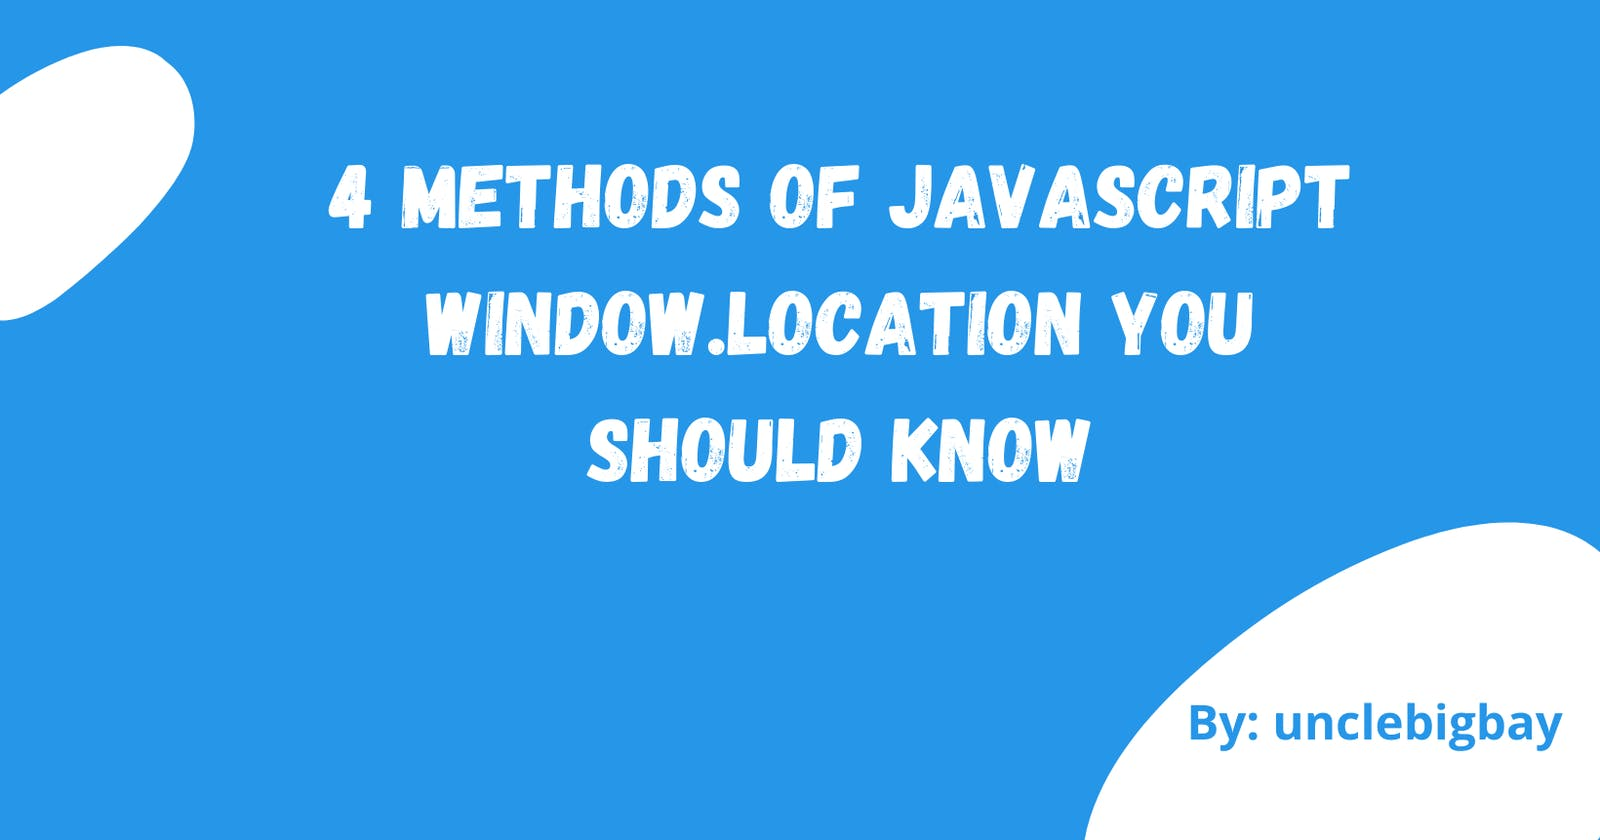 4 Methods of Javascript window.location you should know